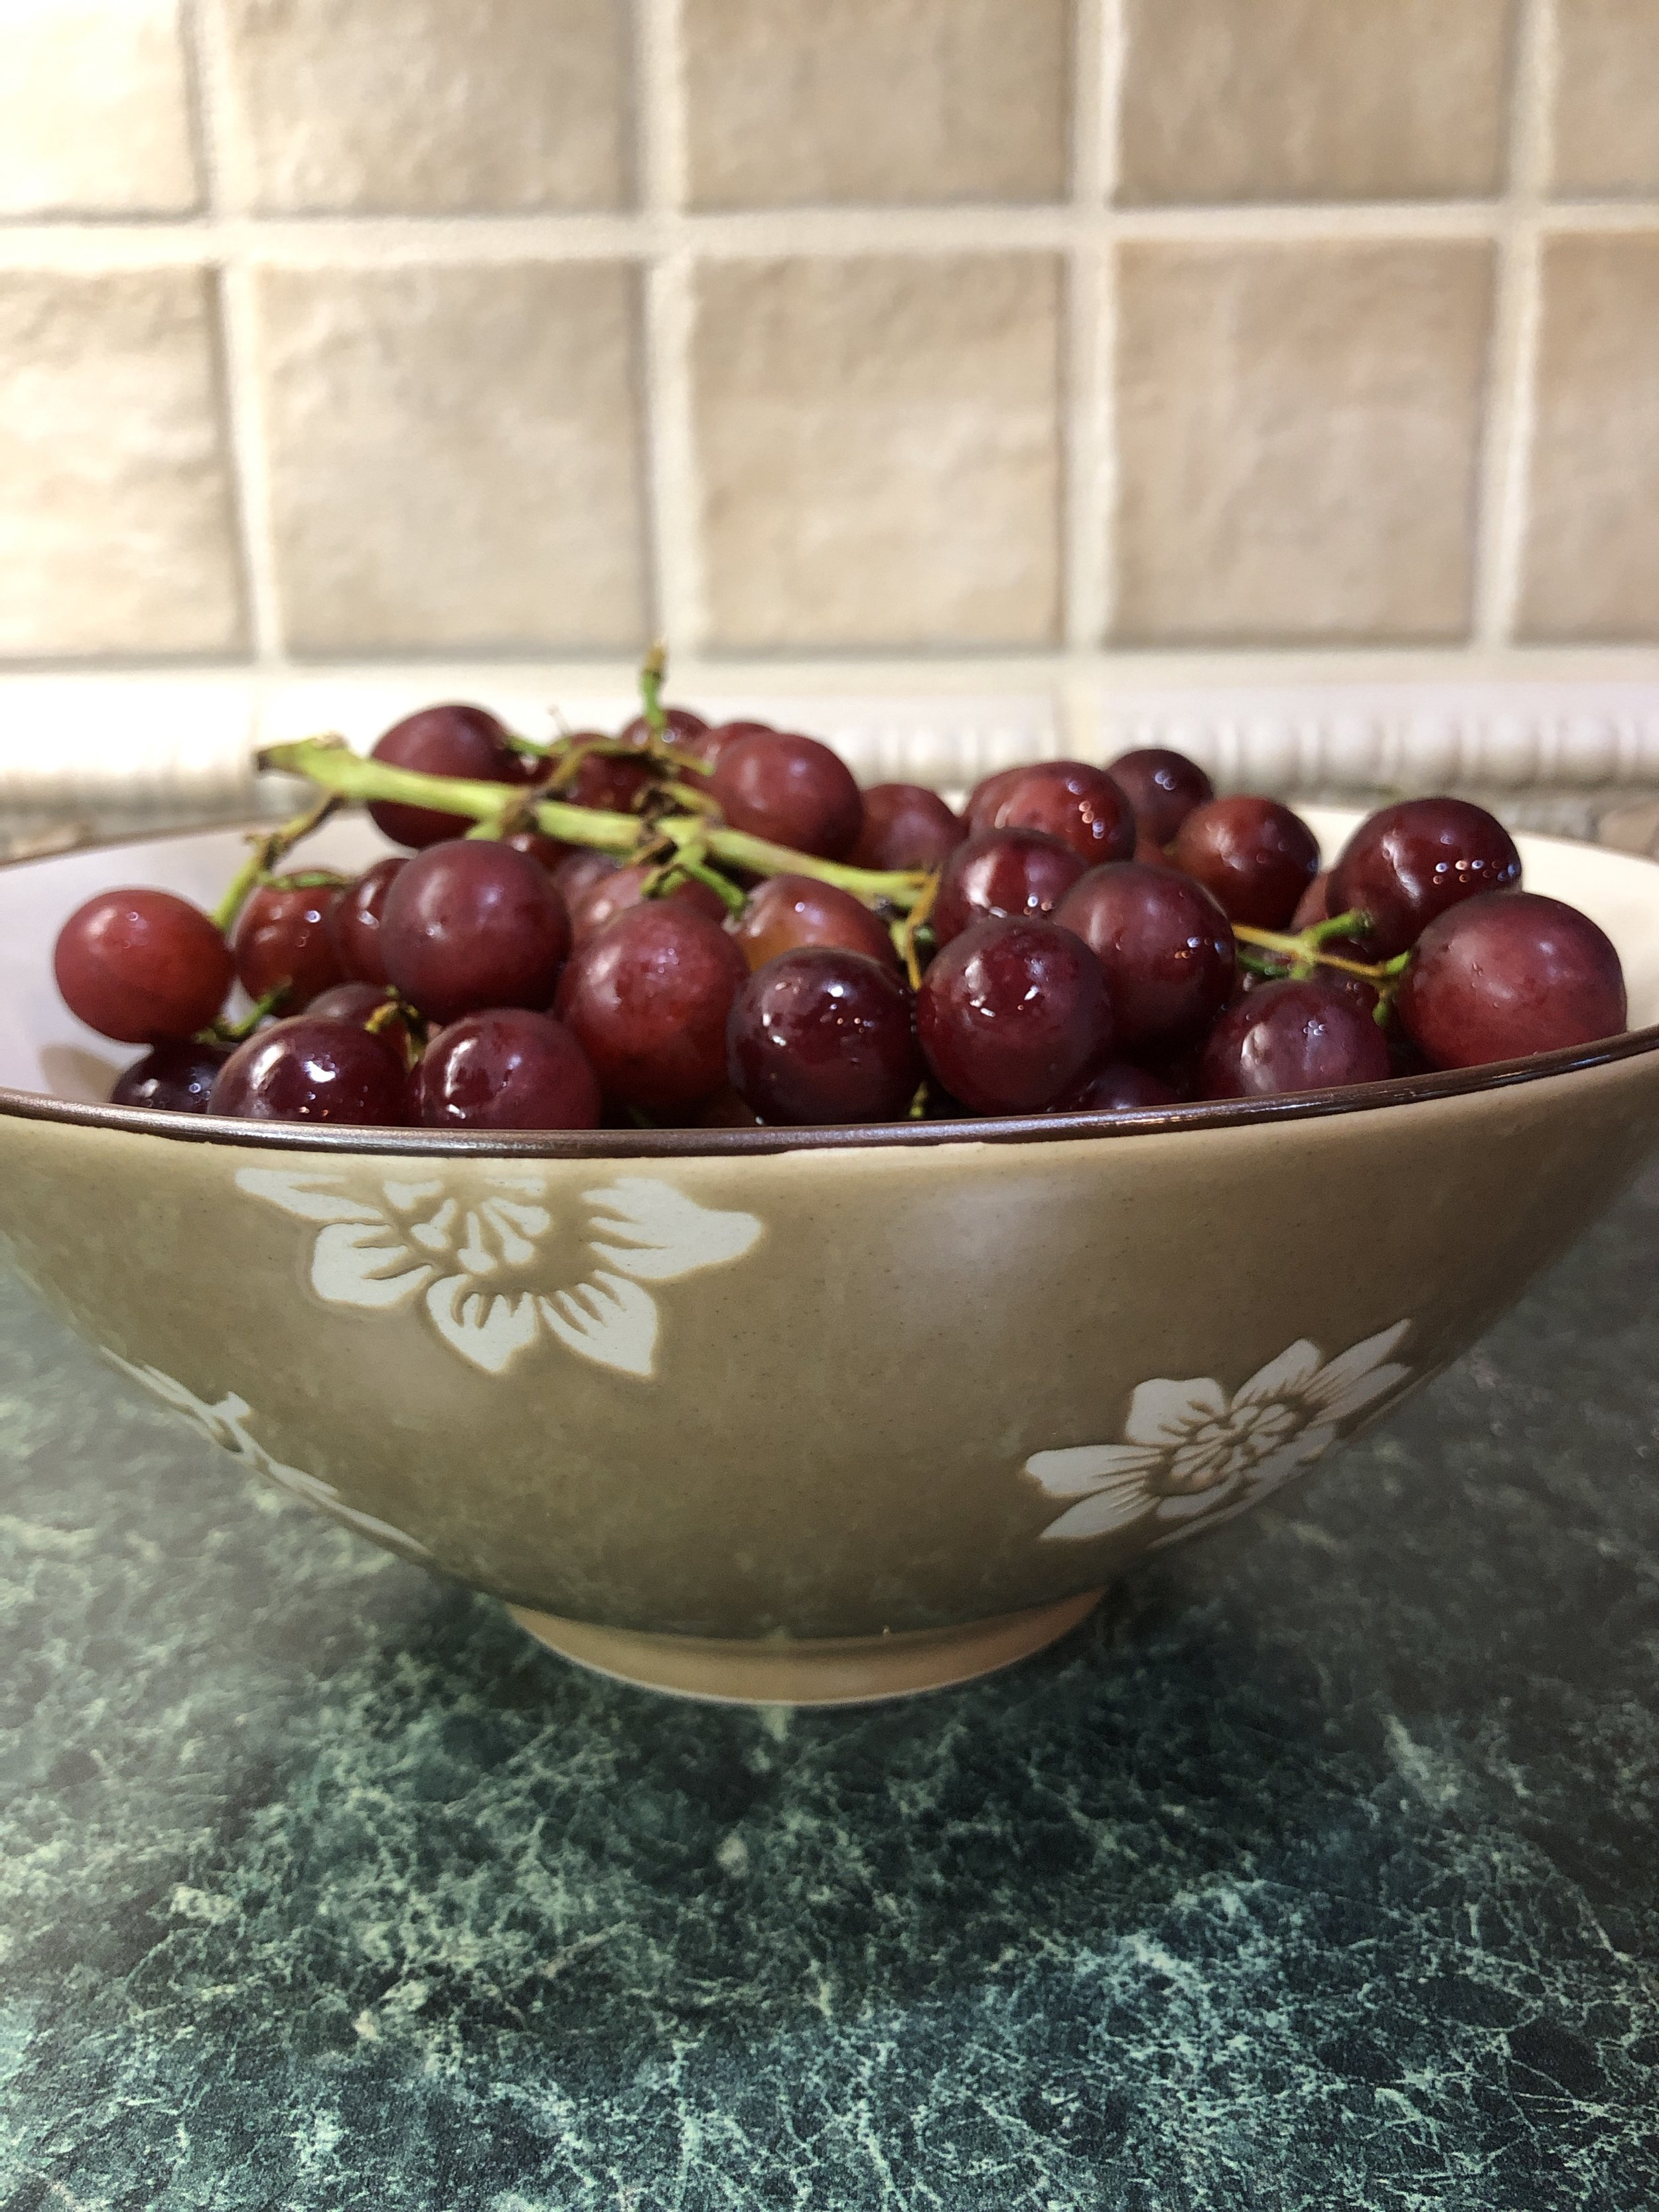 I love simple luxuries, like fresh fruit in a pretty bowl. Keeping a clean and tidy home is a simple luxury too!